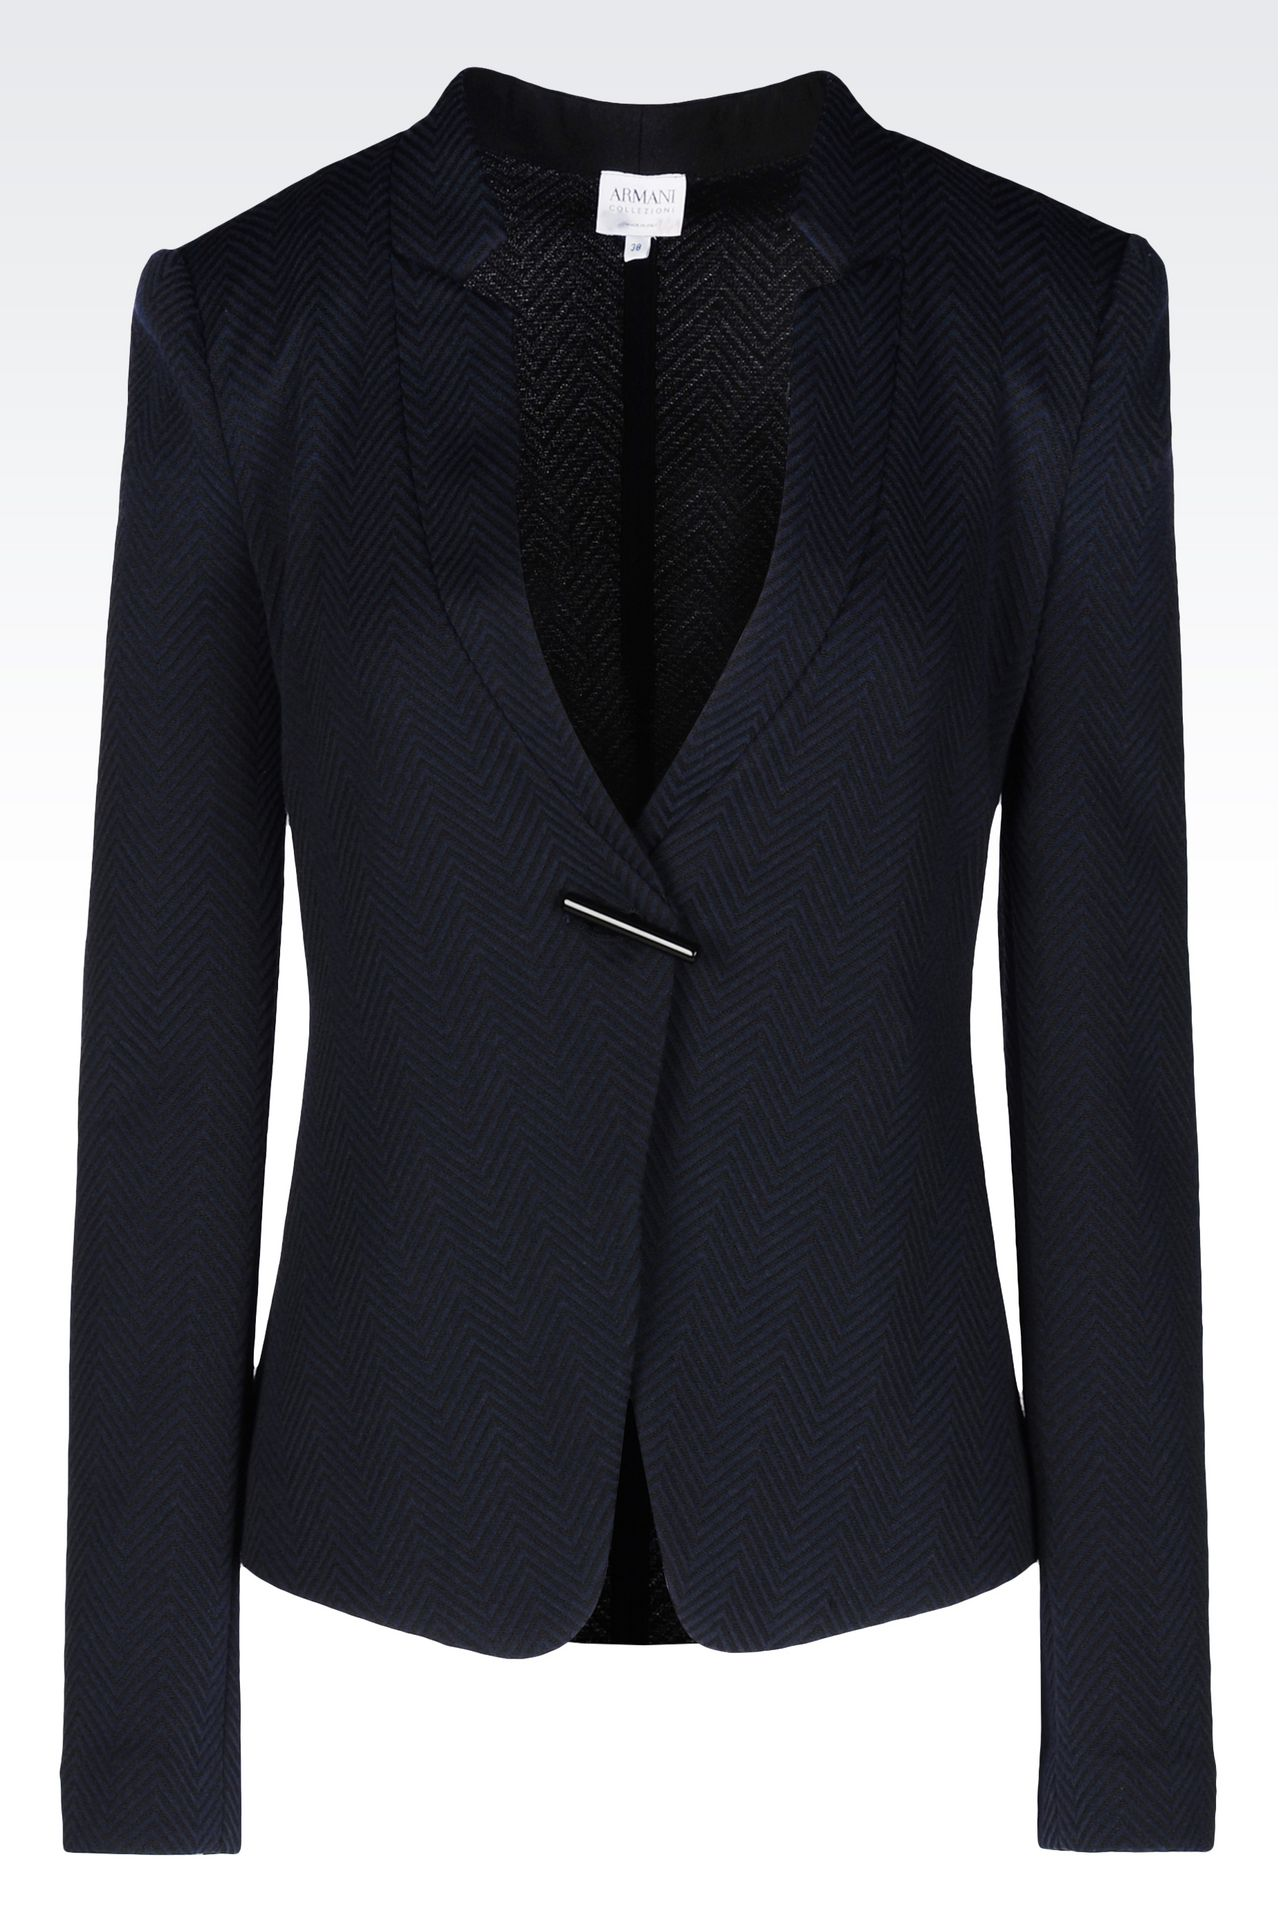 JACKET IN JACQUARD: One button jackets Women by Armani - 0